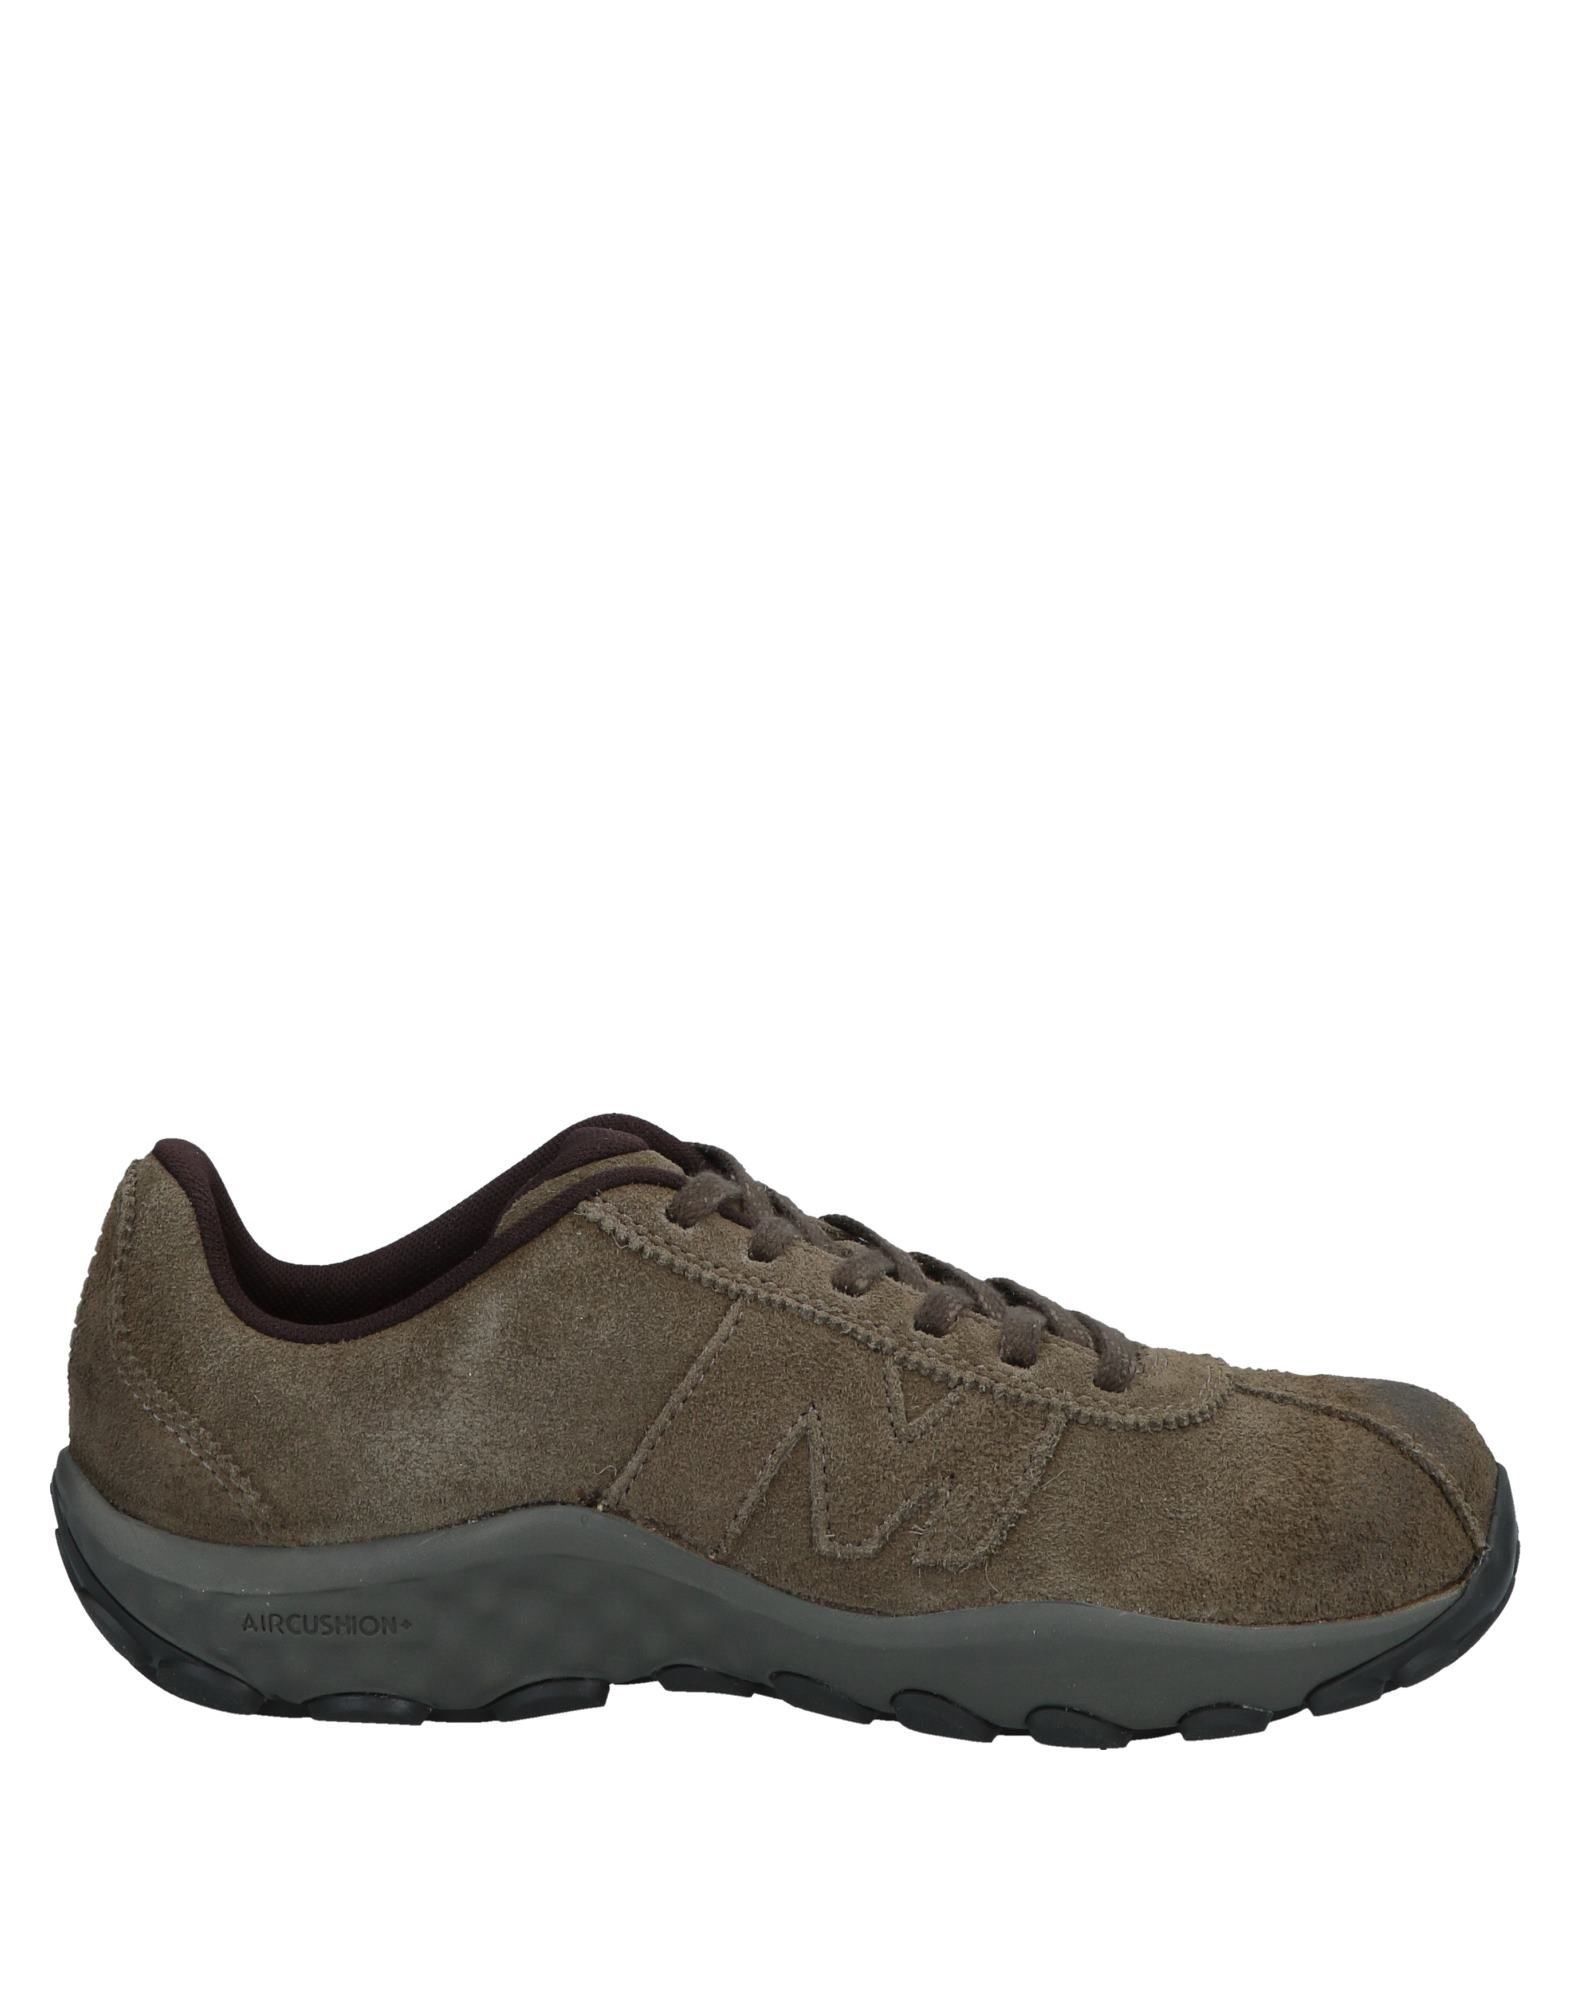 Baskets Merrell Homme - baskets Merrell   - 11700346CP